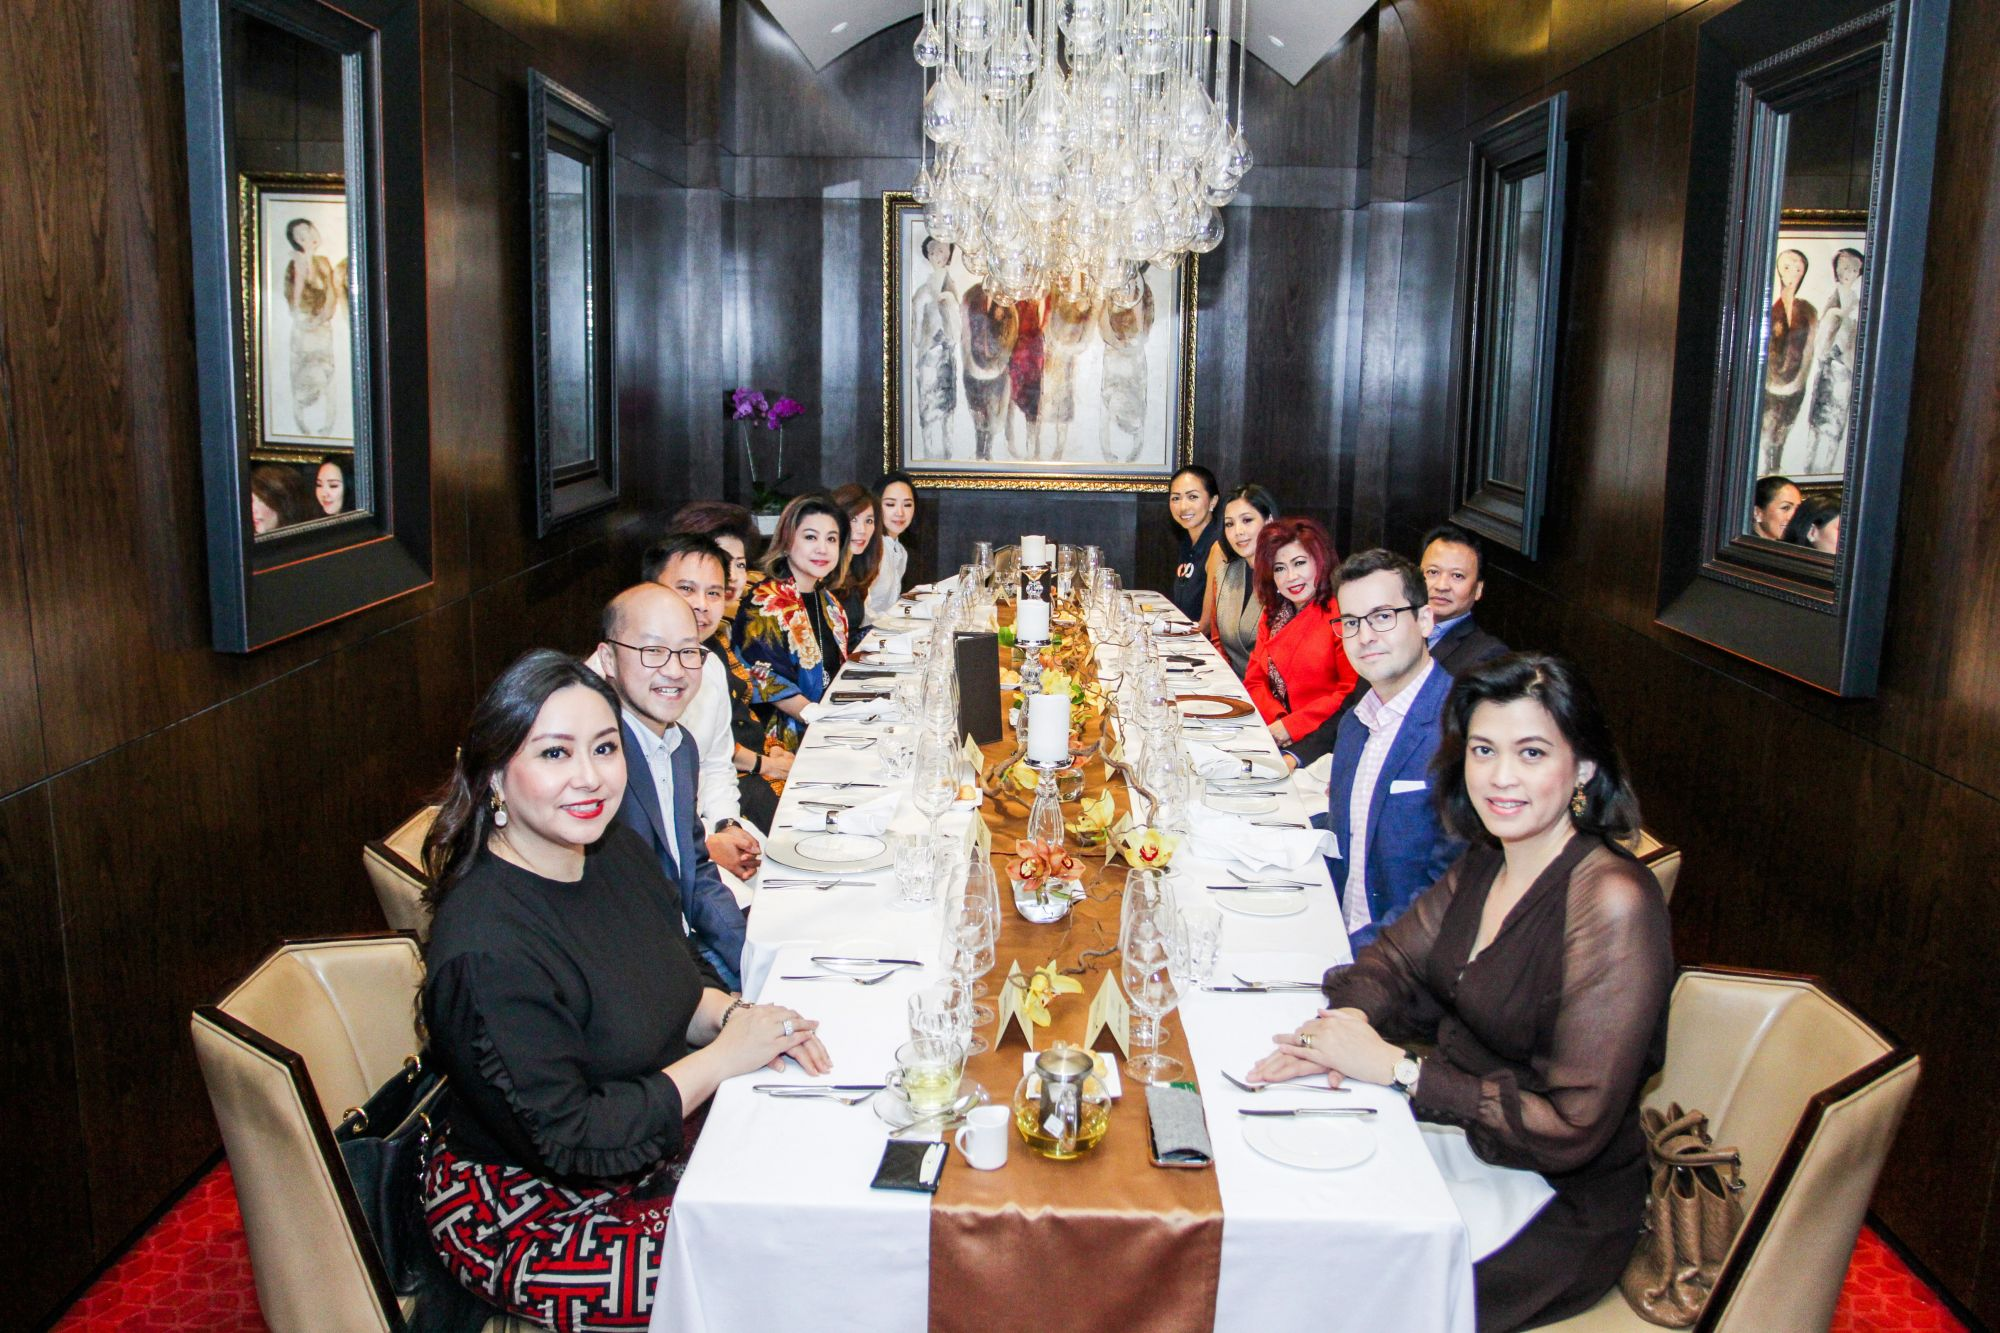 In Pictures: The Indonesia Tribe Kickoff Dinner